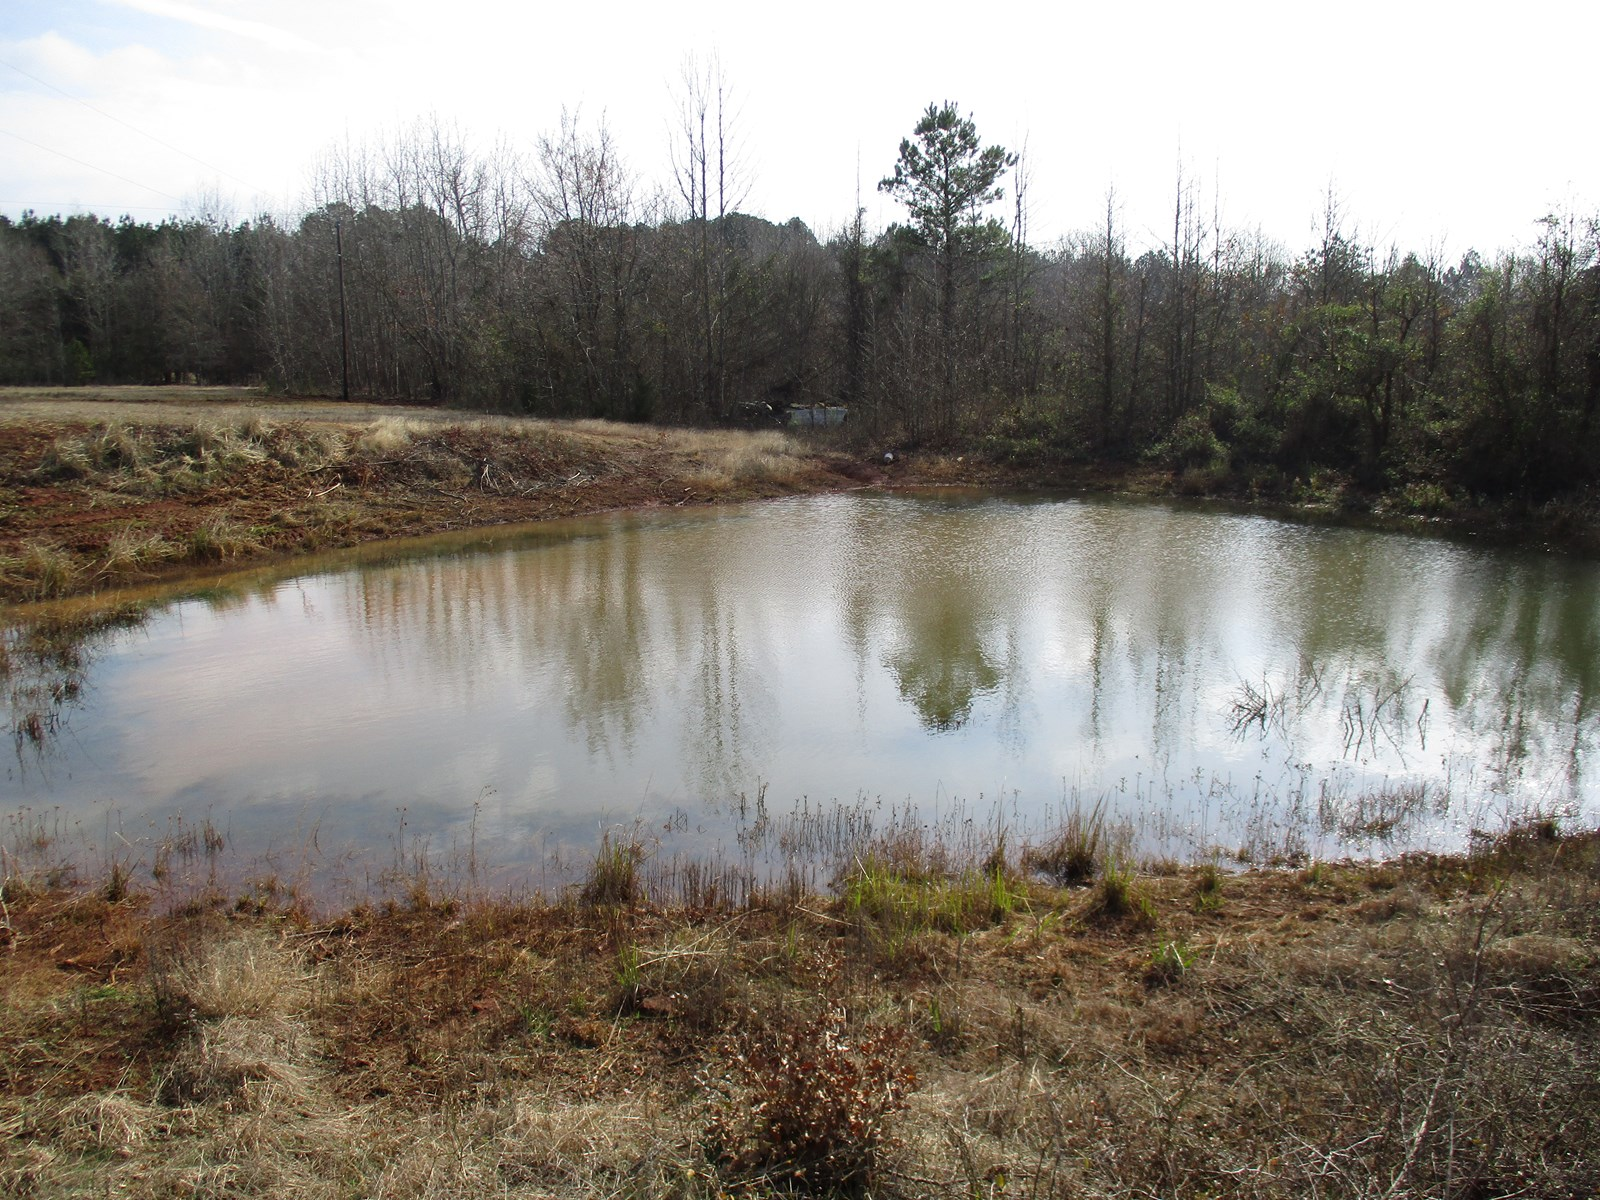 Farm/Ranch For Sale - East Texas Real Estate